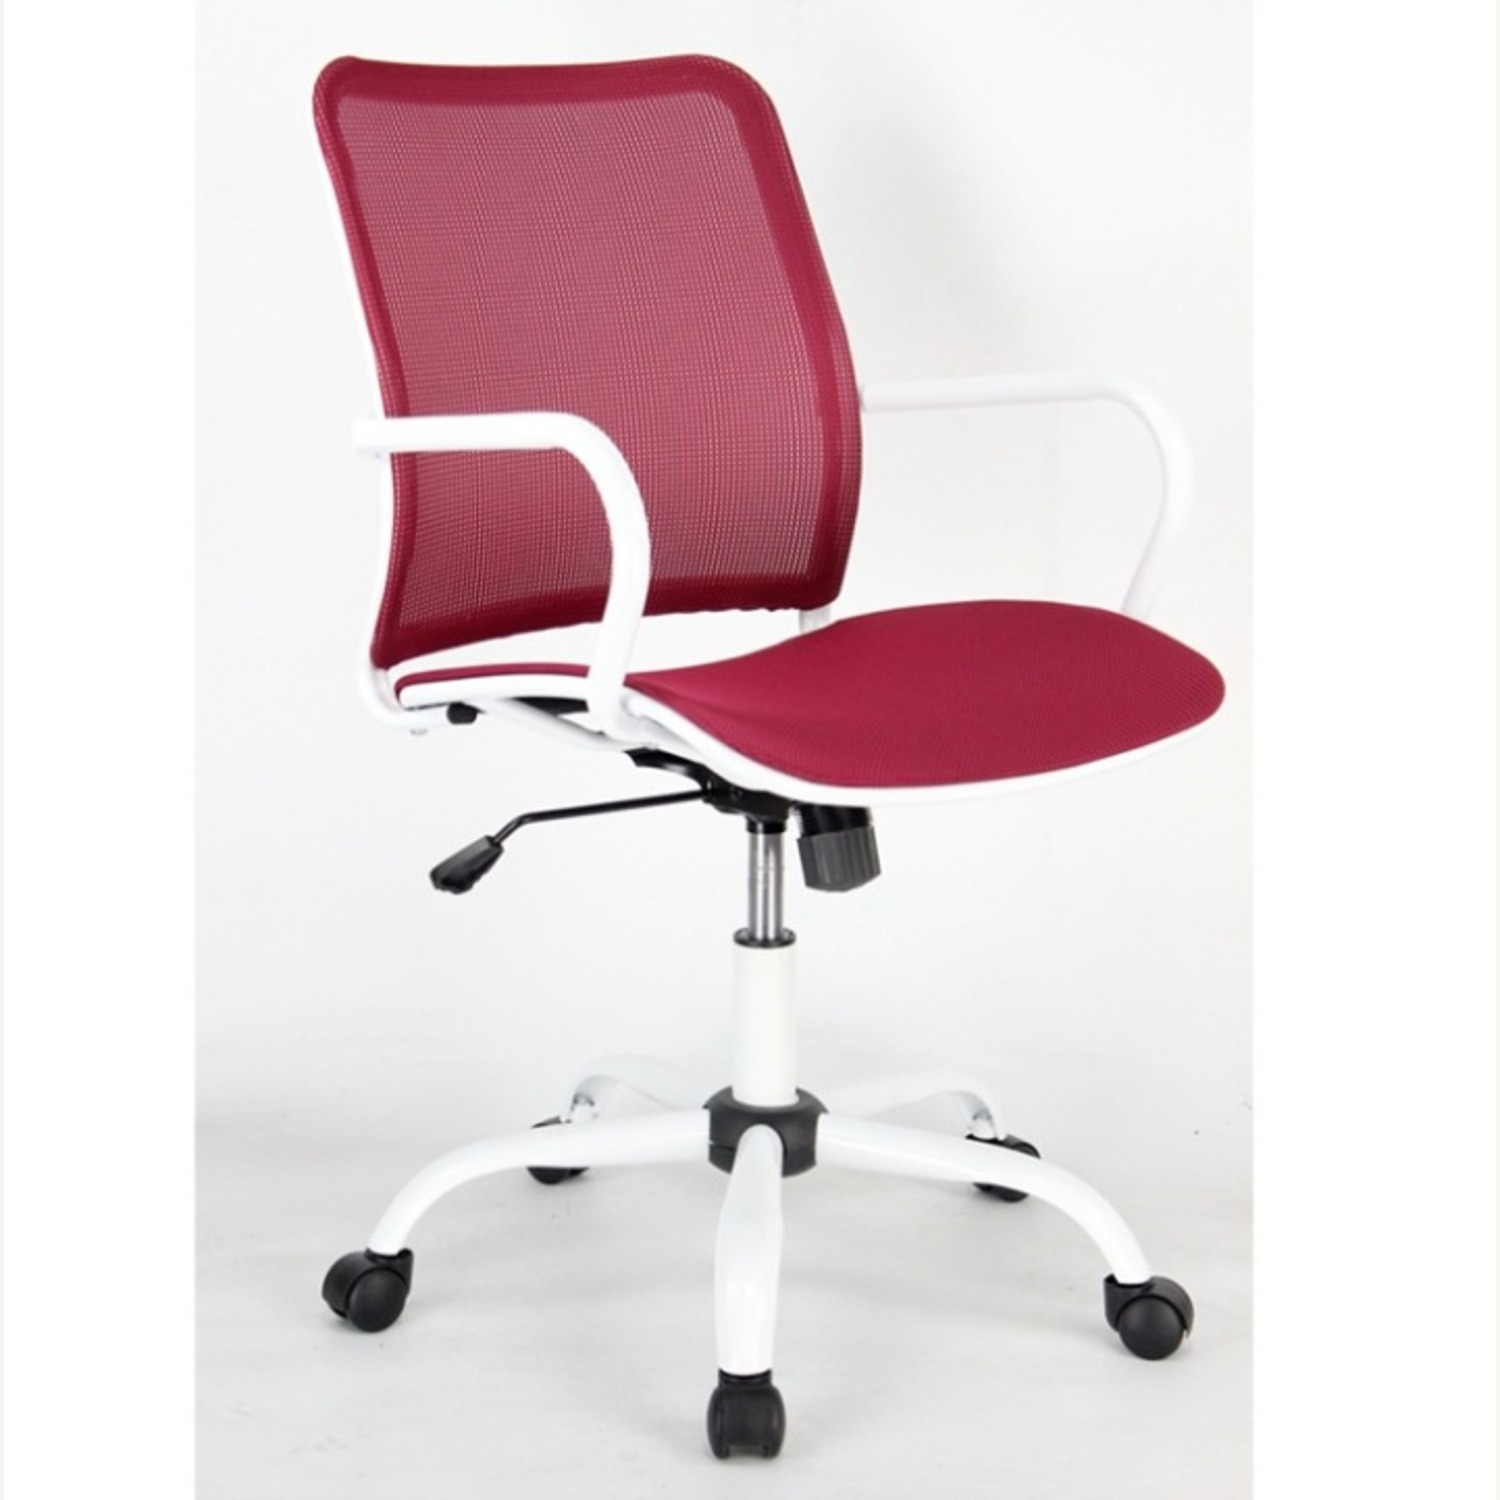 Office Chair In Red Back & Seat Mesh Finish - image-1